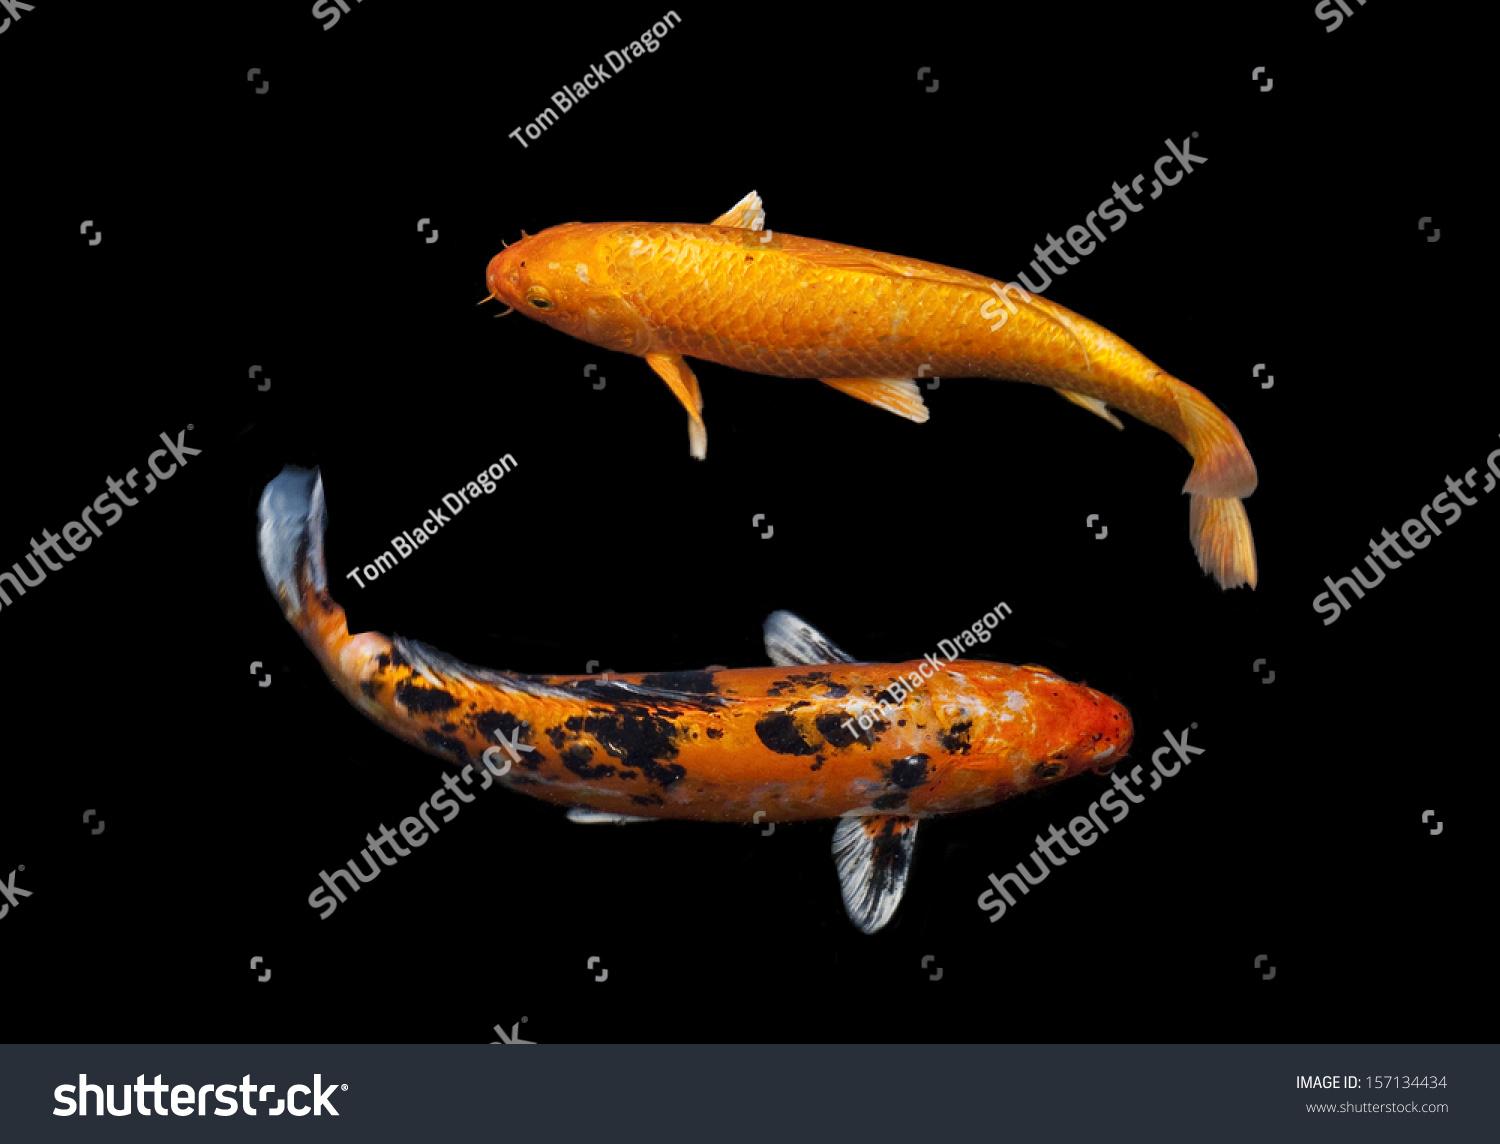 Koi fish swim pondisolate background blackfancy stock for All black koi fish